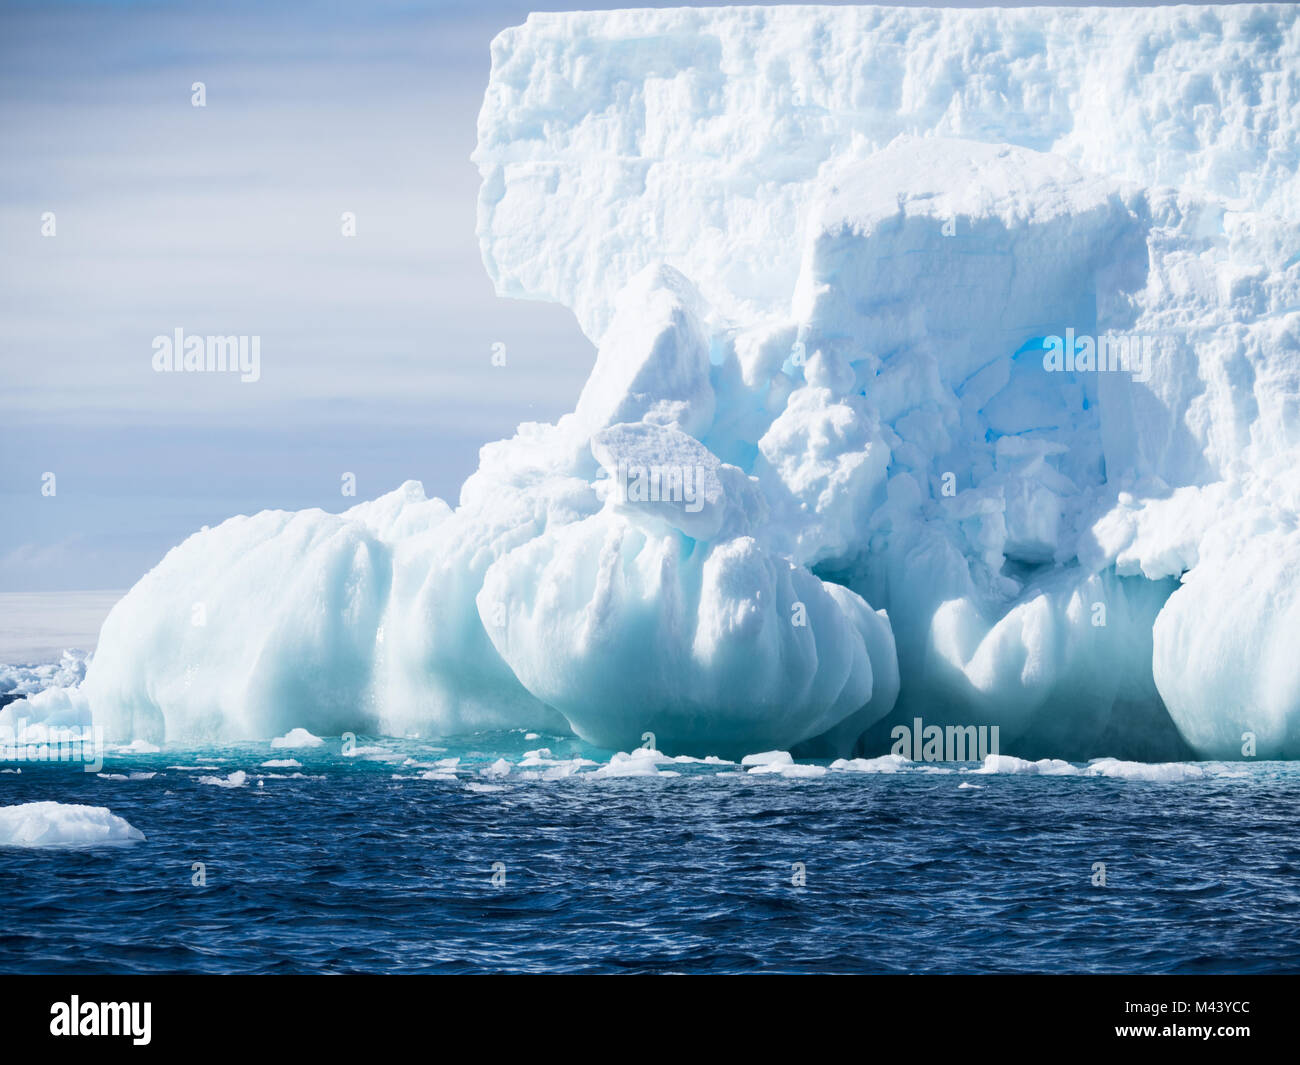 A large light blue iceberg with a foundation of spheres. The dark blue water of the Southern Ocean has small ripples. - Stock Image